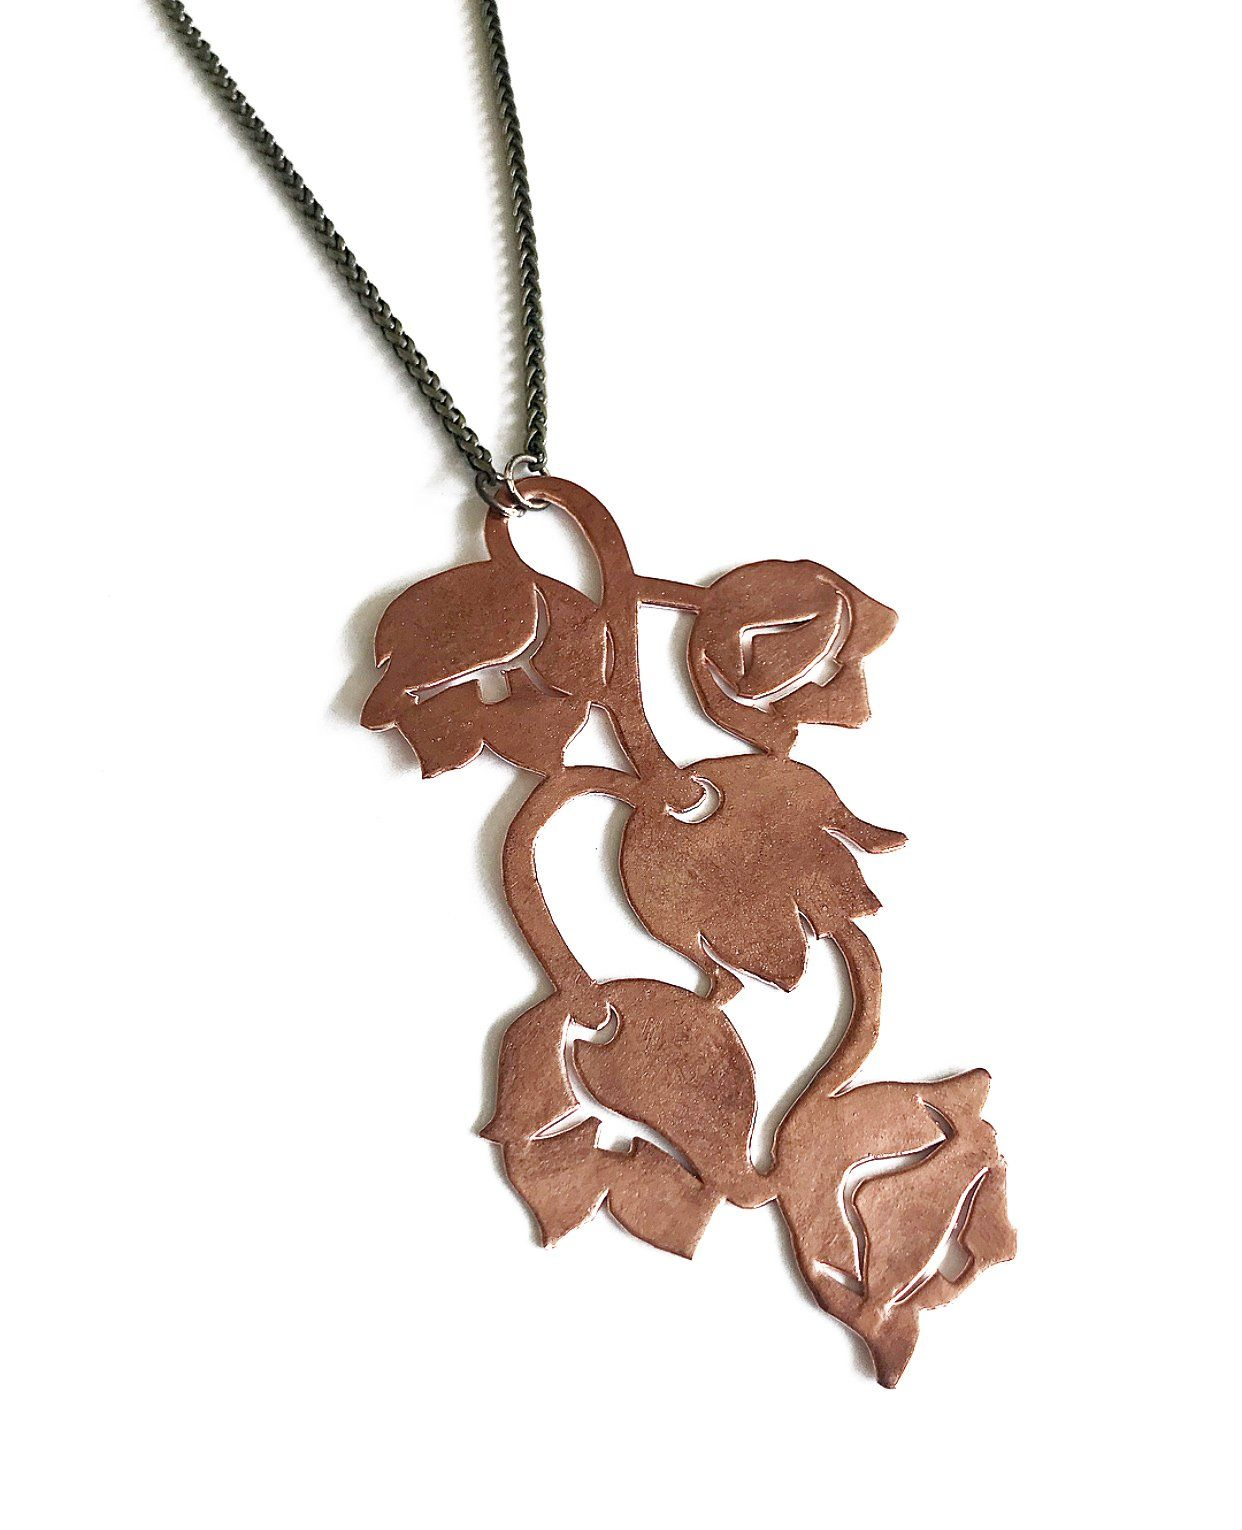 Lily of the Valley Necklace Lily of the valley, Paper